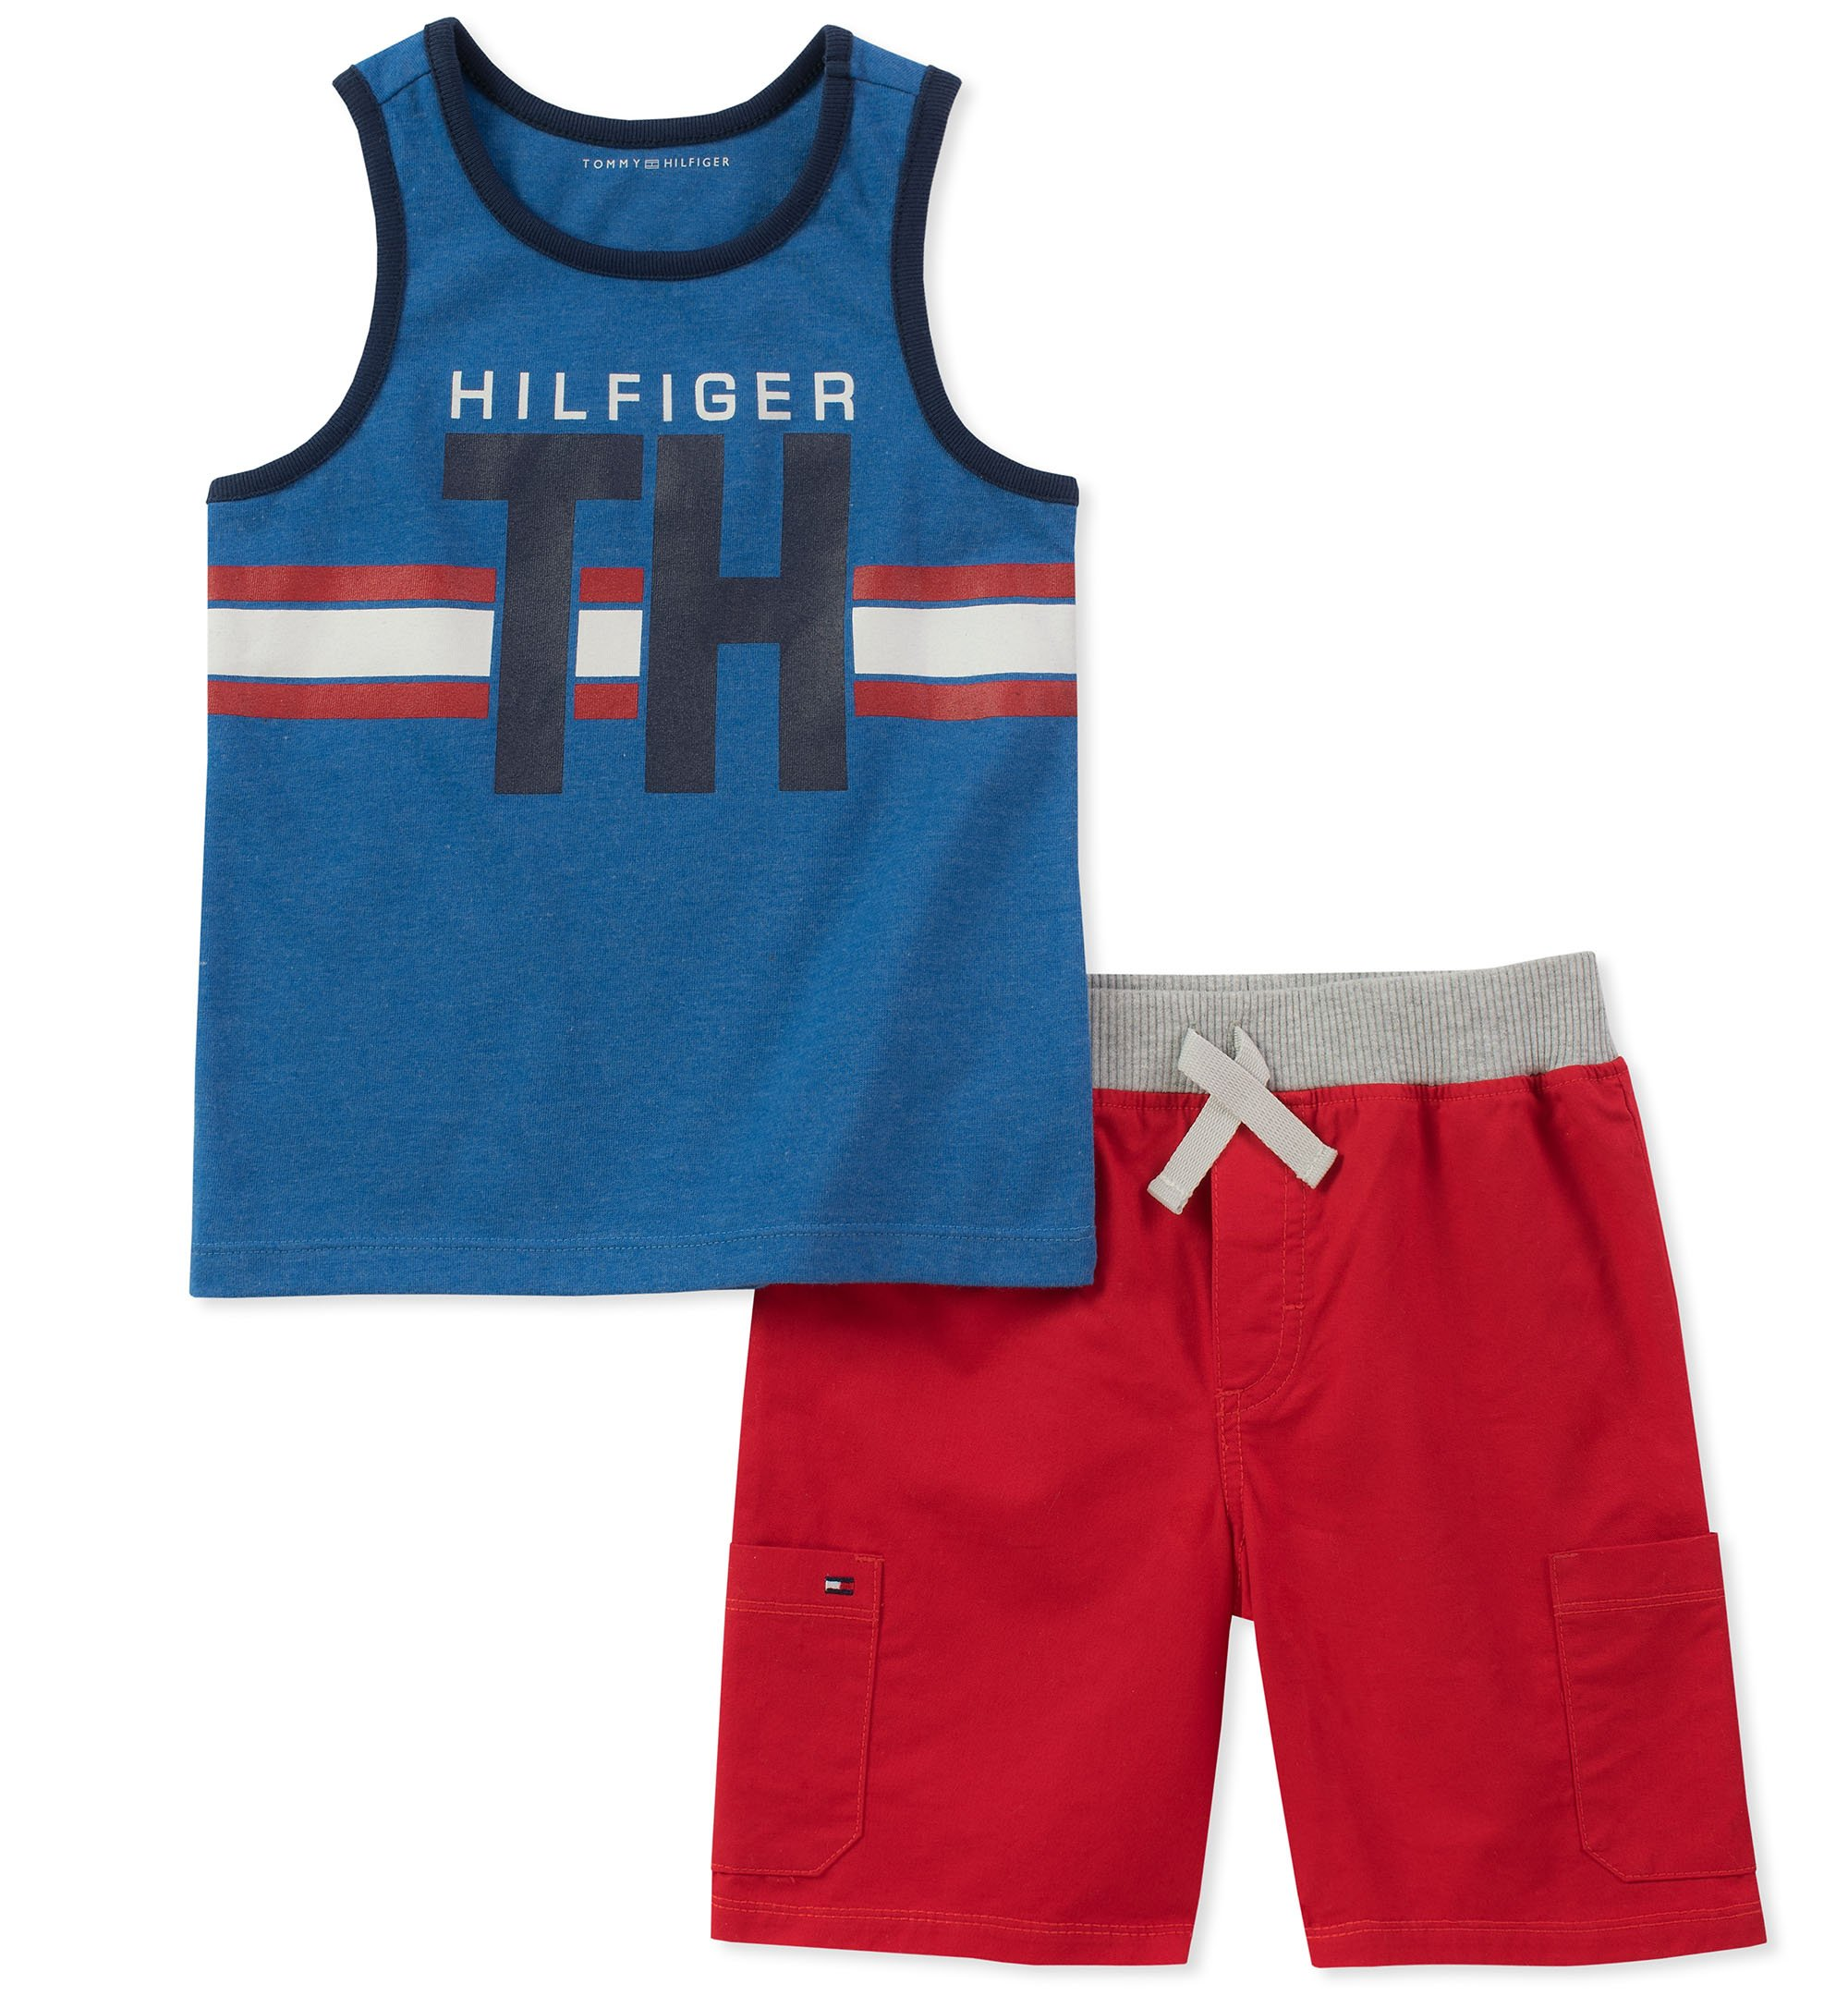 Tommy Hilfiger Boys' Toddler 2 Pieces Tank Shorts Set, Blue/red, 3T